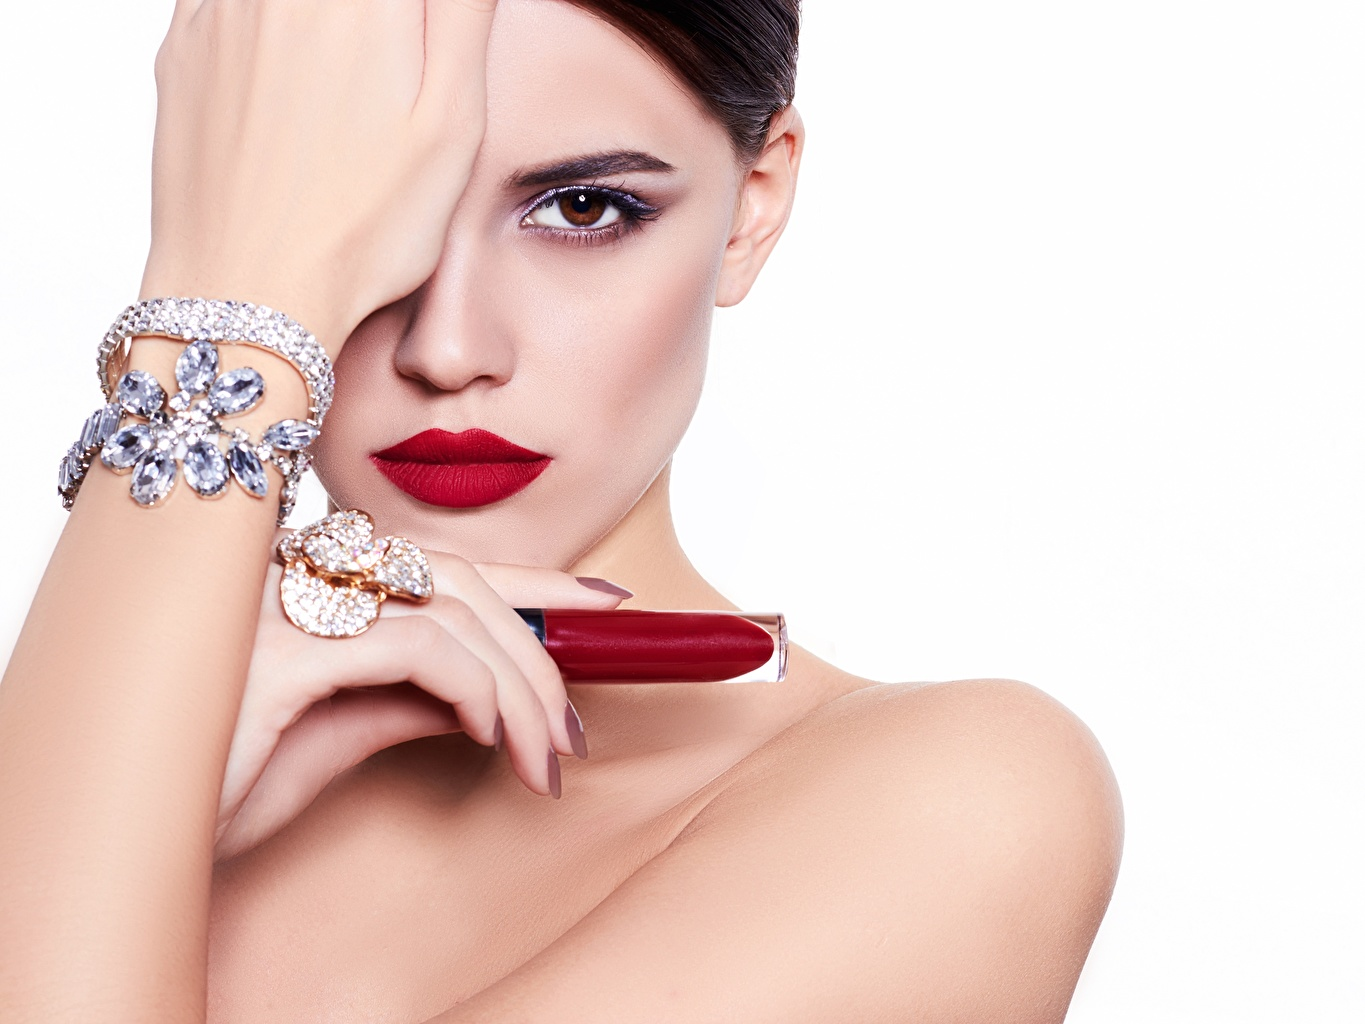 Pictures Model Lipstick Makeup Girls Bracelet Hands Glance White background Jewelry Modelling female young woman Staring